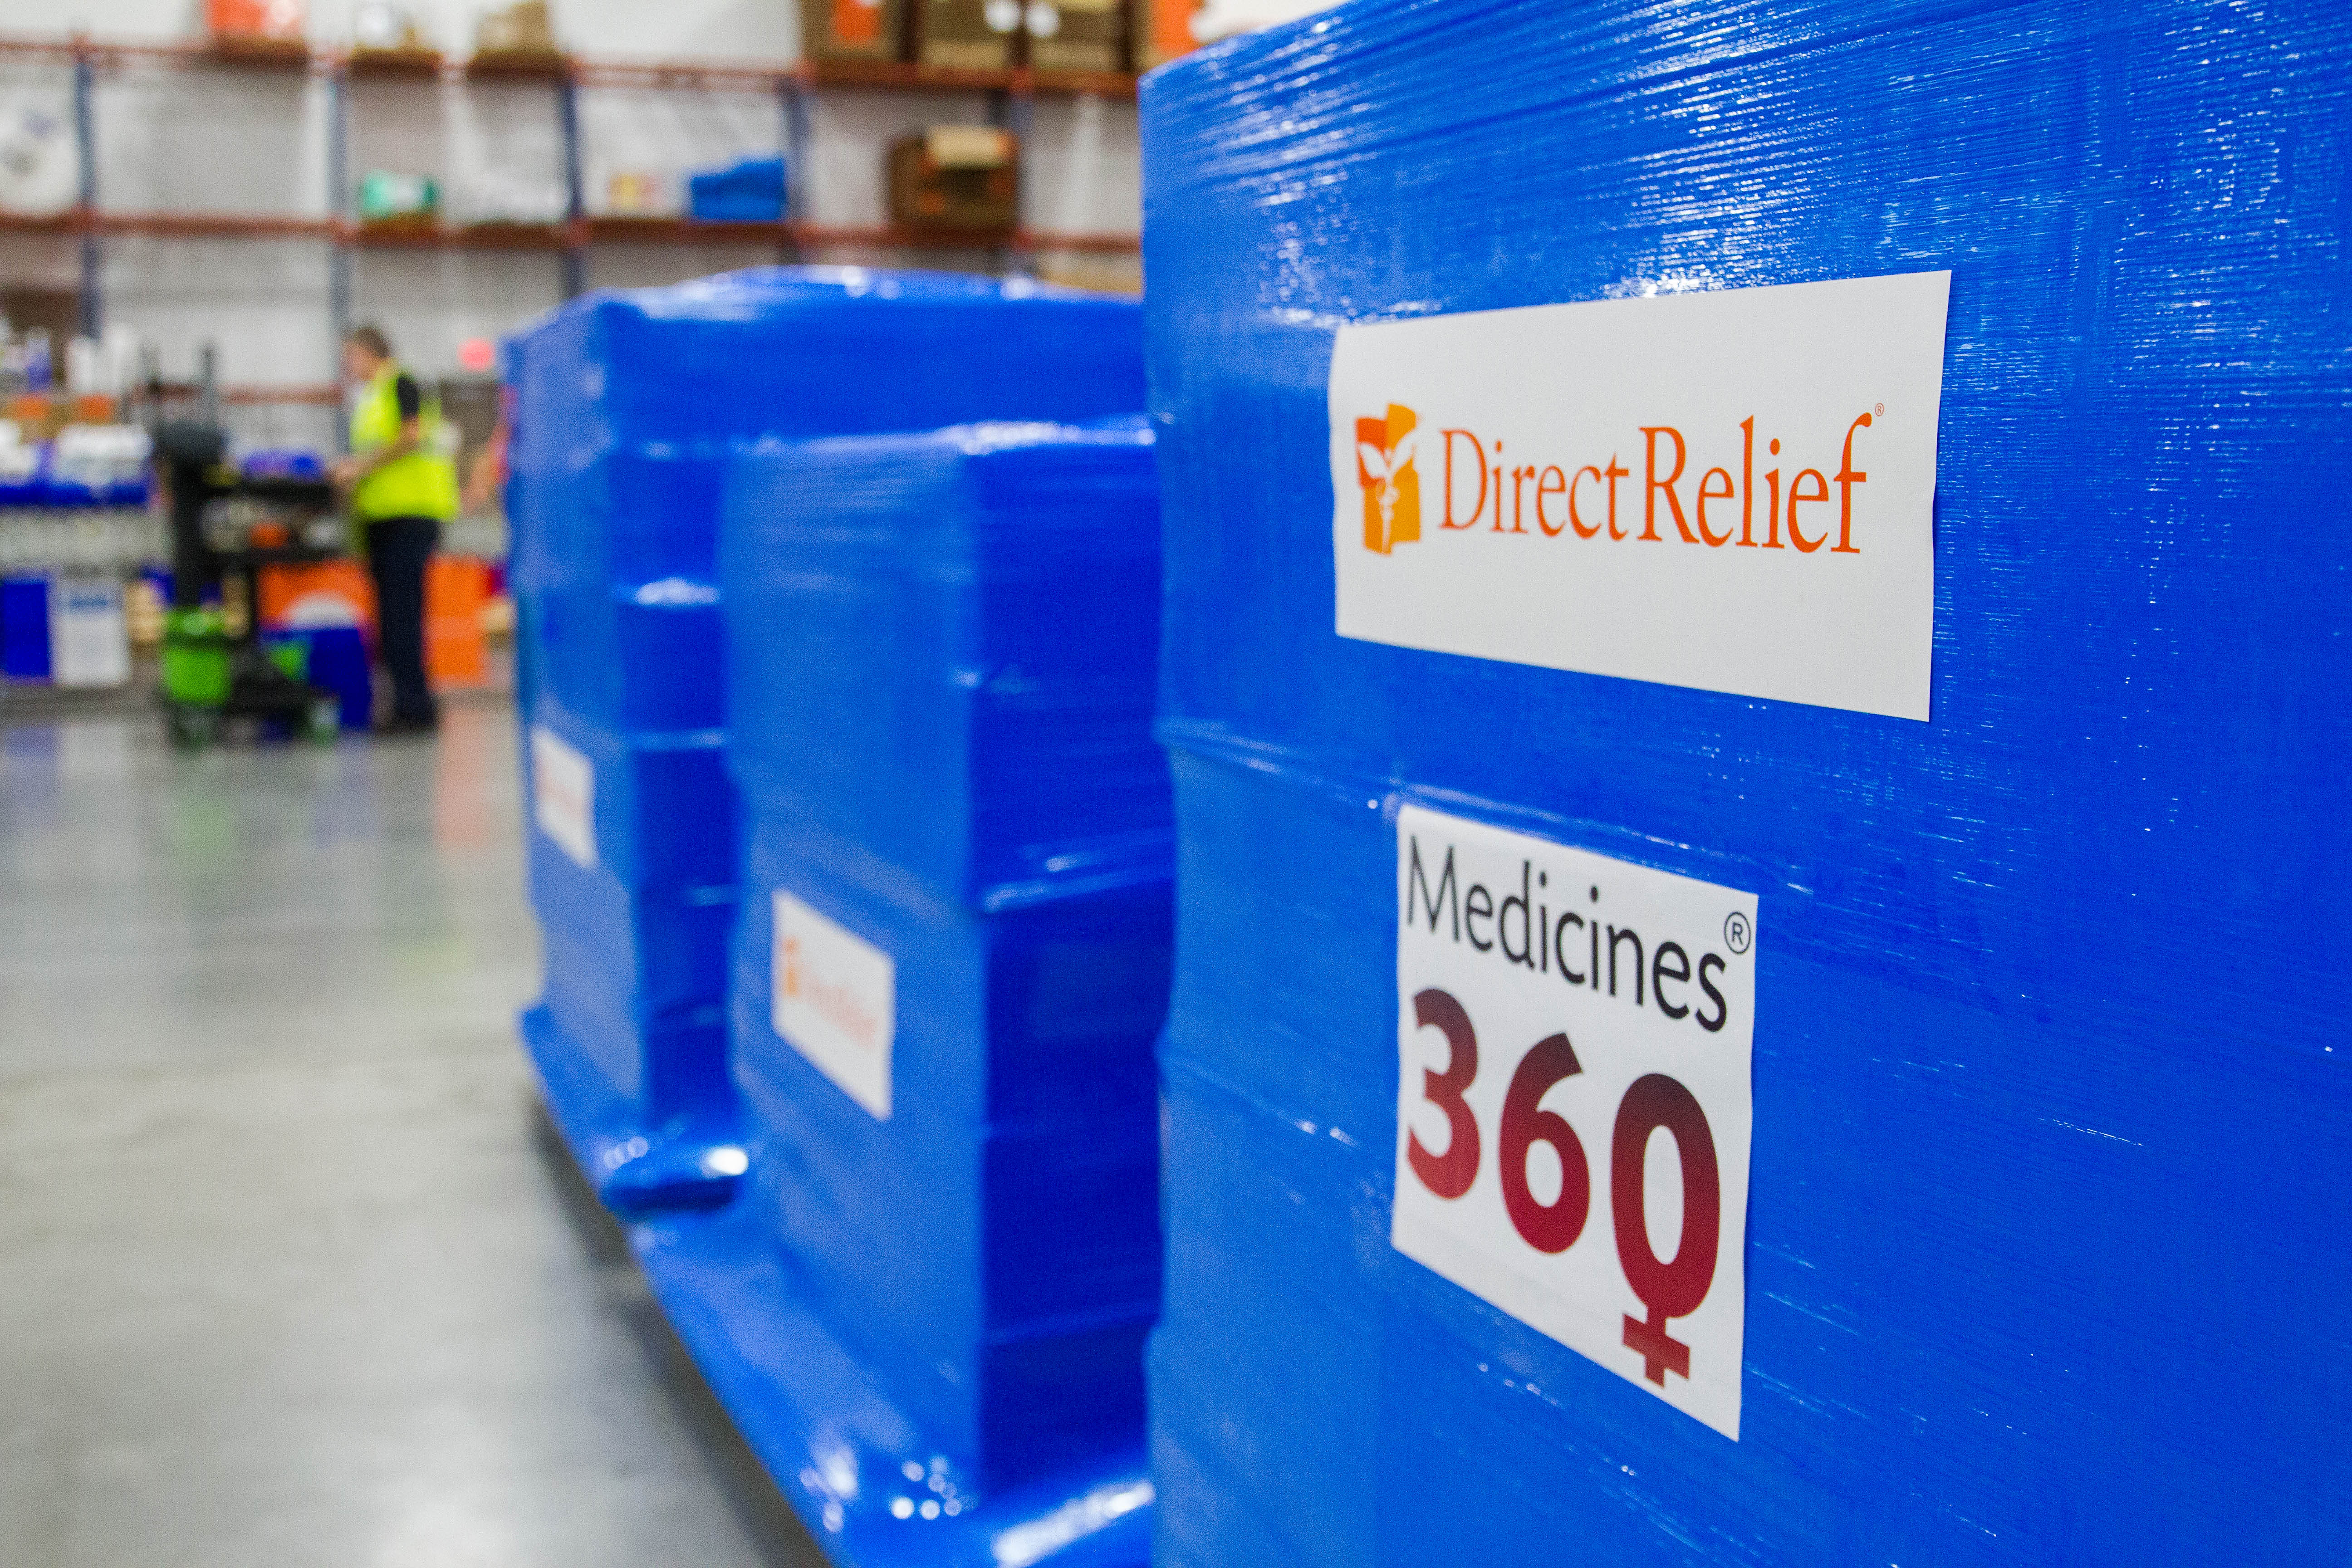 Direct Relief and Medicines 360 are partnering to distribute IUDs to participating clinics across the U.S., providing women with no-cost birth control. (Lara Cooper/Direct Relief)